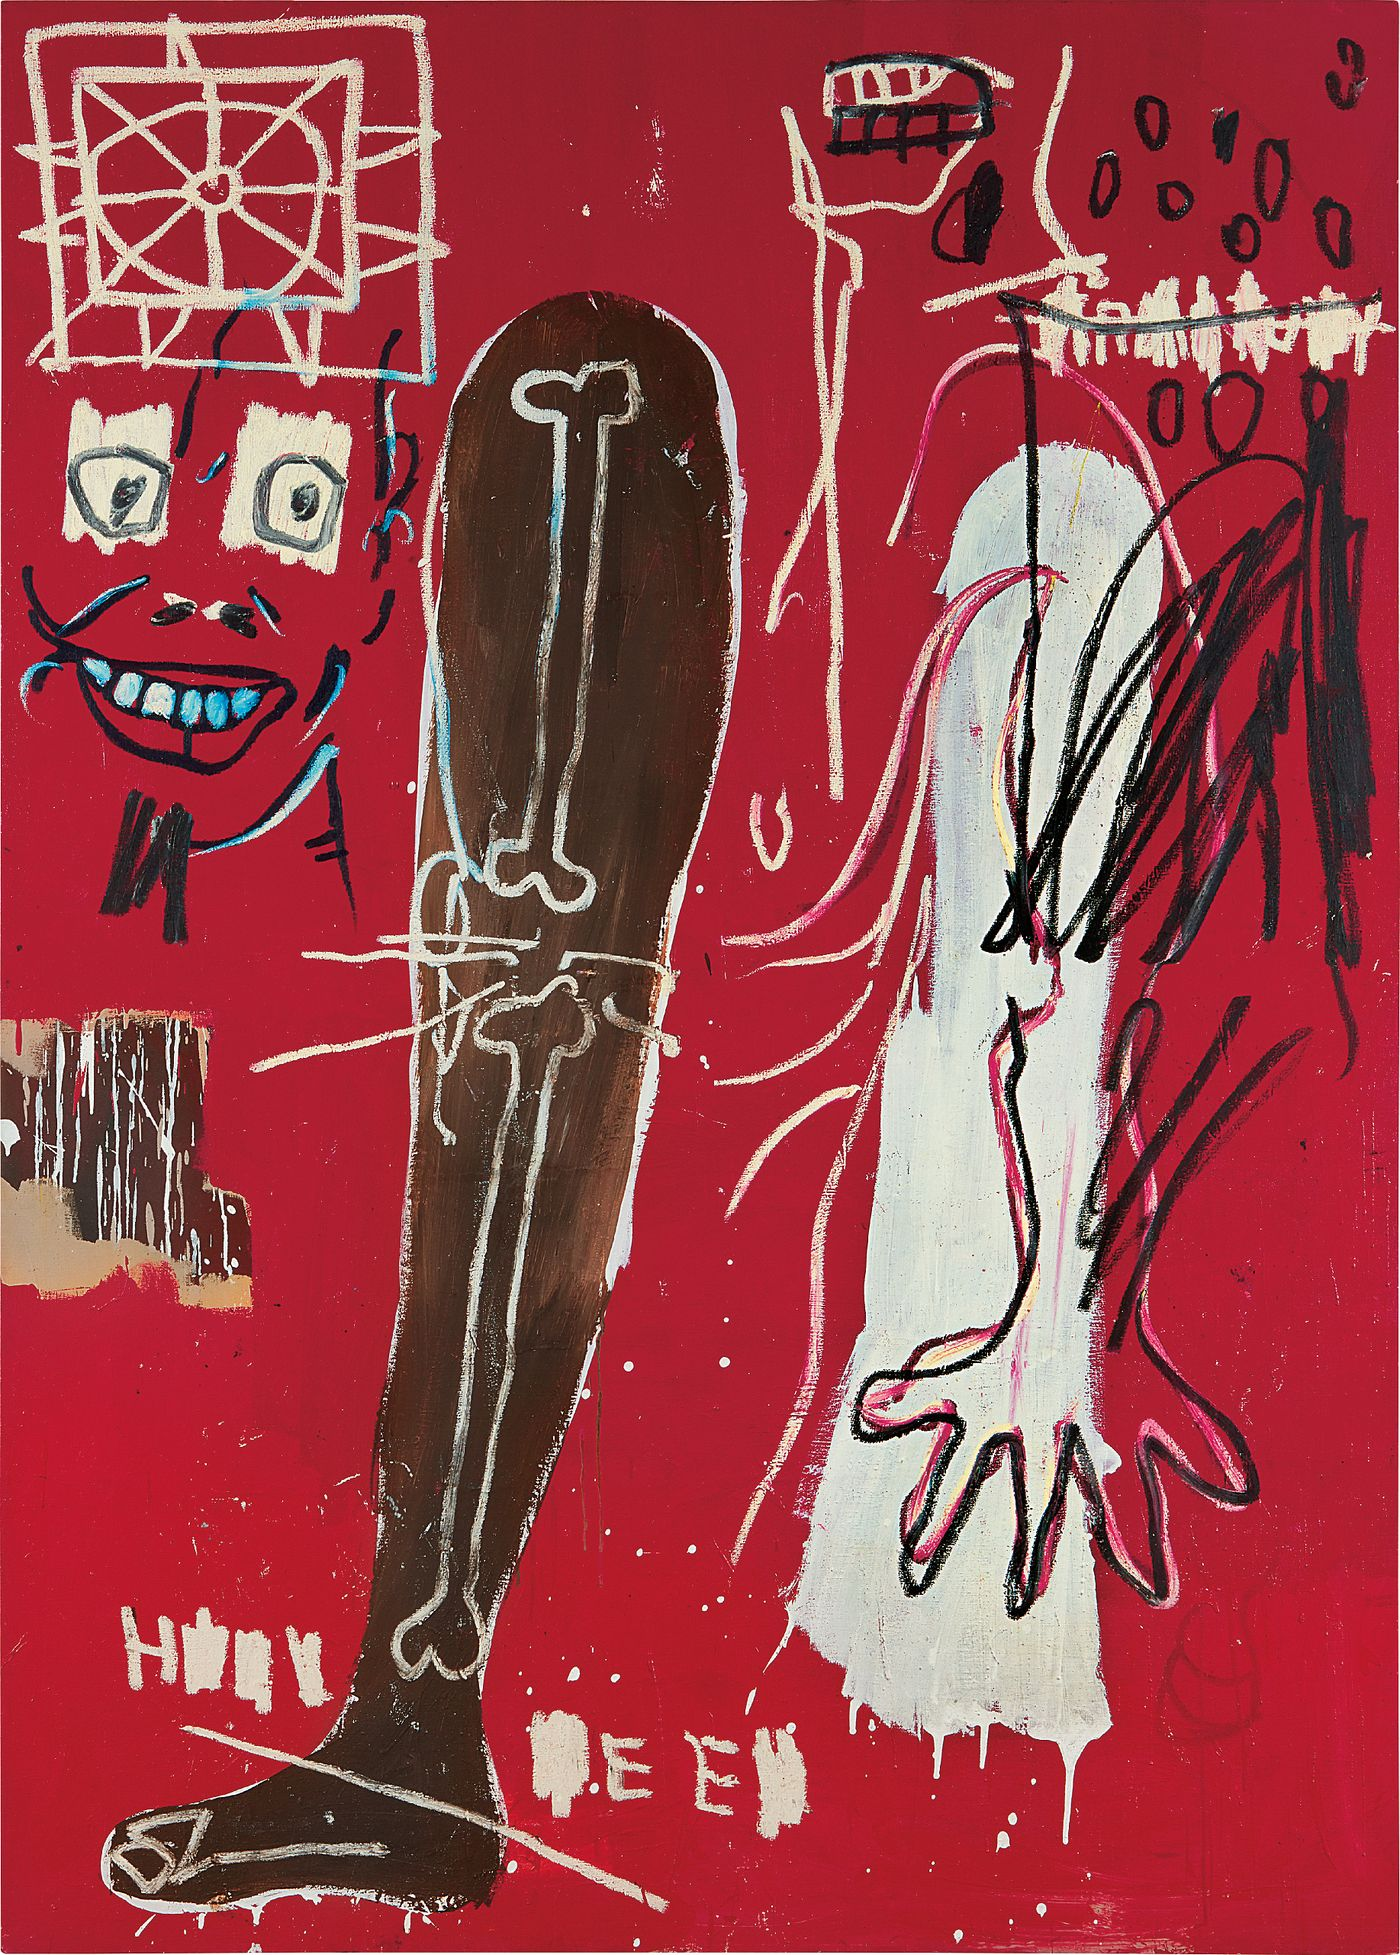 A dense Basquiat composition references pop culture, 1940s jazz and a fascination with the human anatomy.